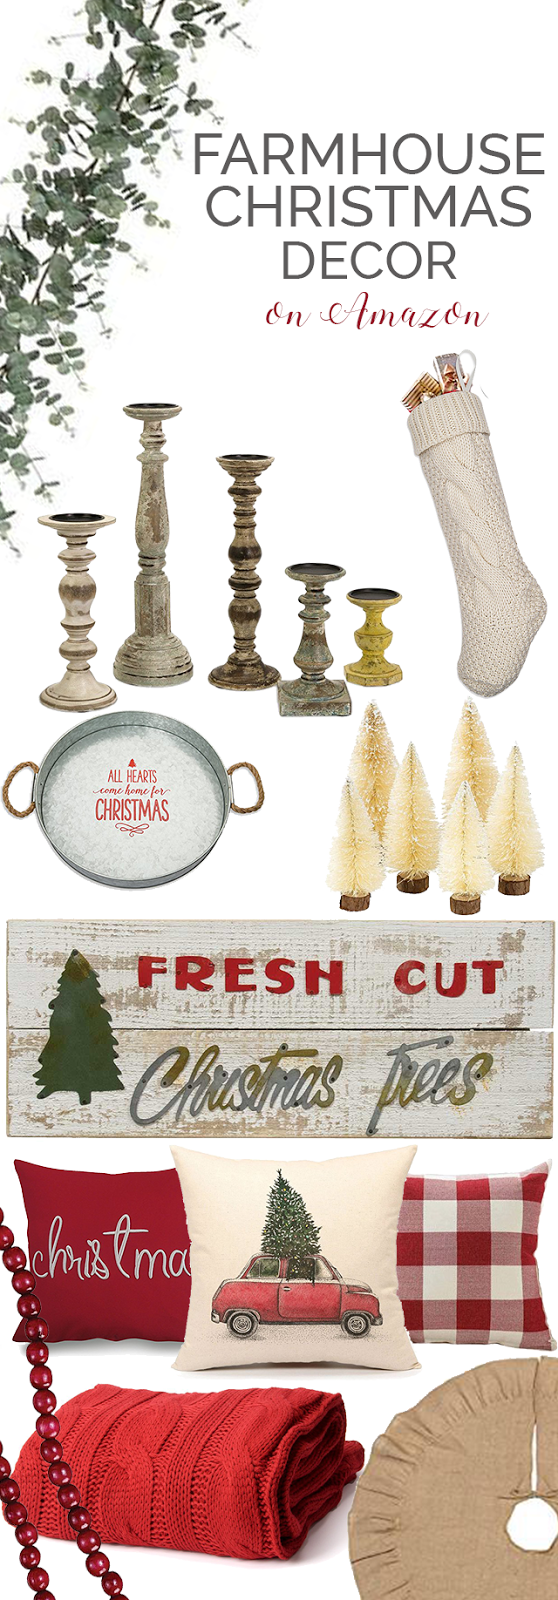 Farmhouse Christmas decor and decorating ideas